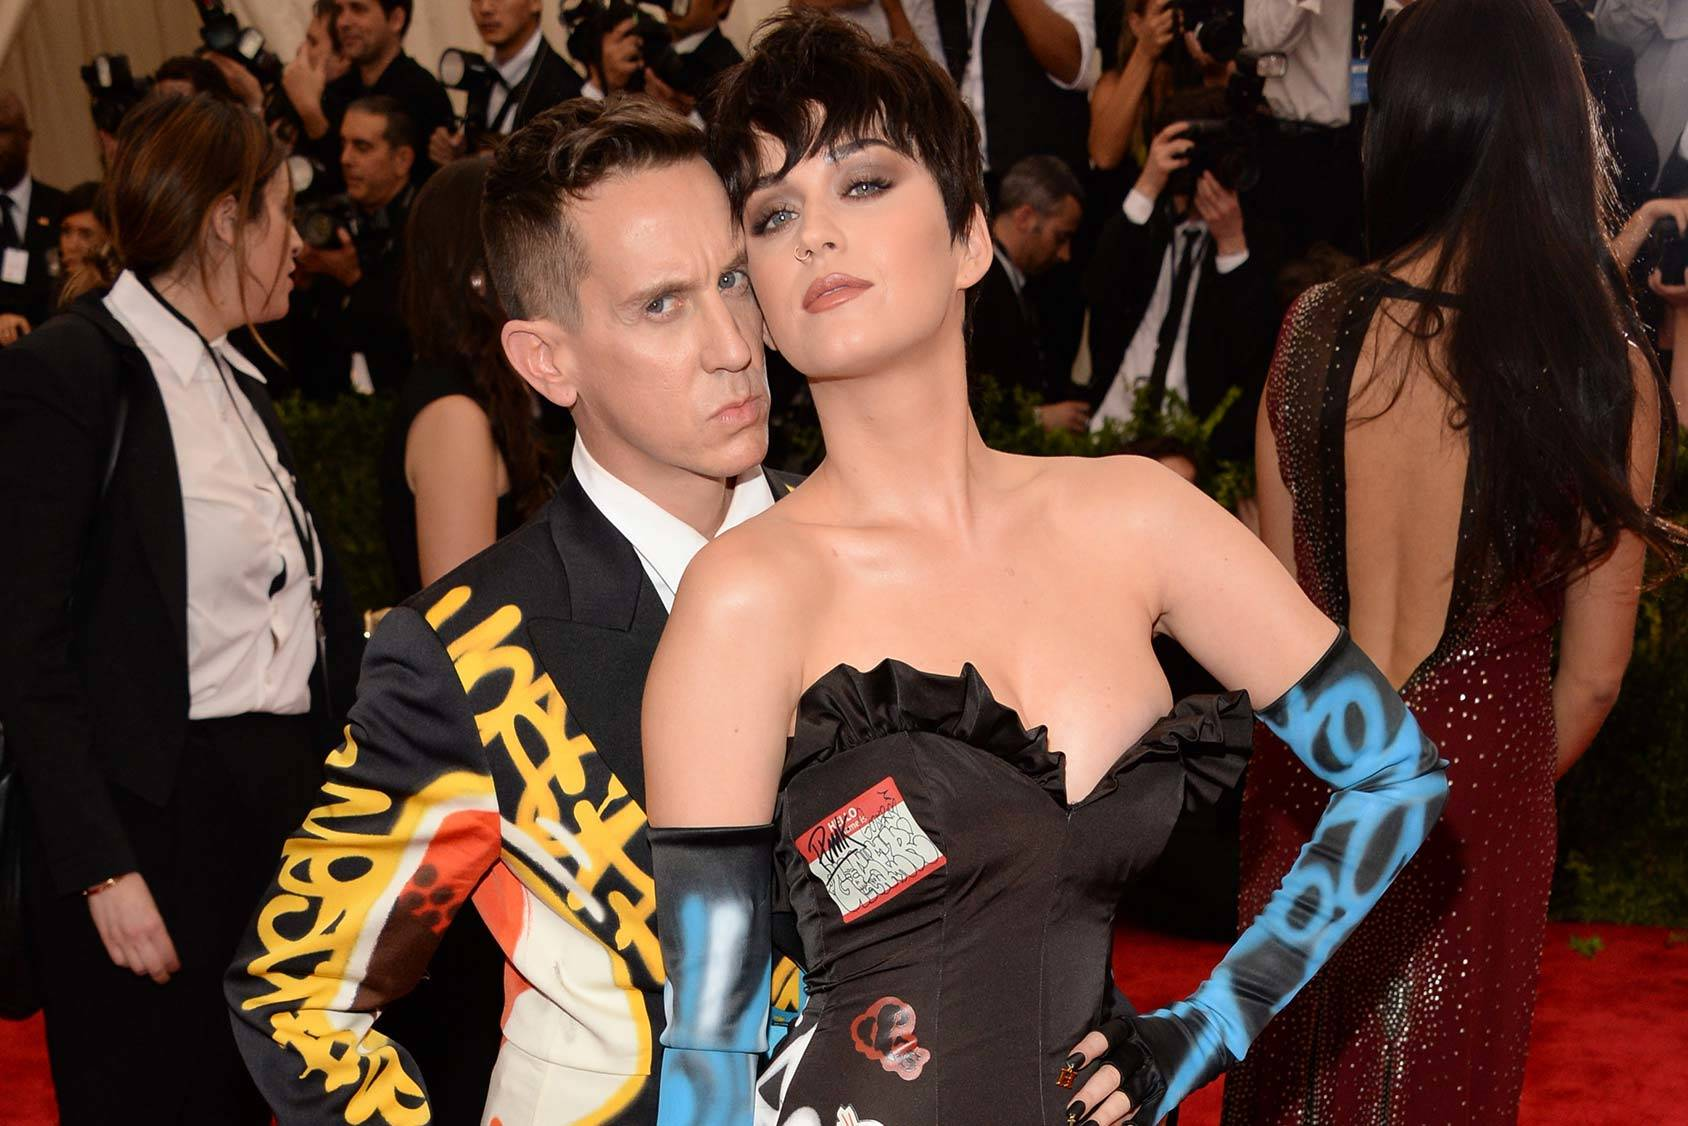 Katy Perry and Jeremy Scott at the Metropolitan Museum of Art's Costume Institute Benefit in Jeremy Scott ́s graffiti print, Getty Images